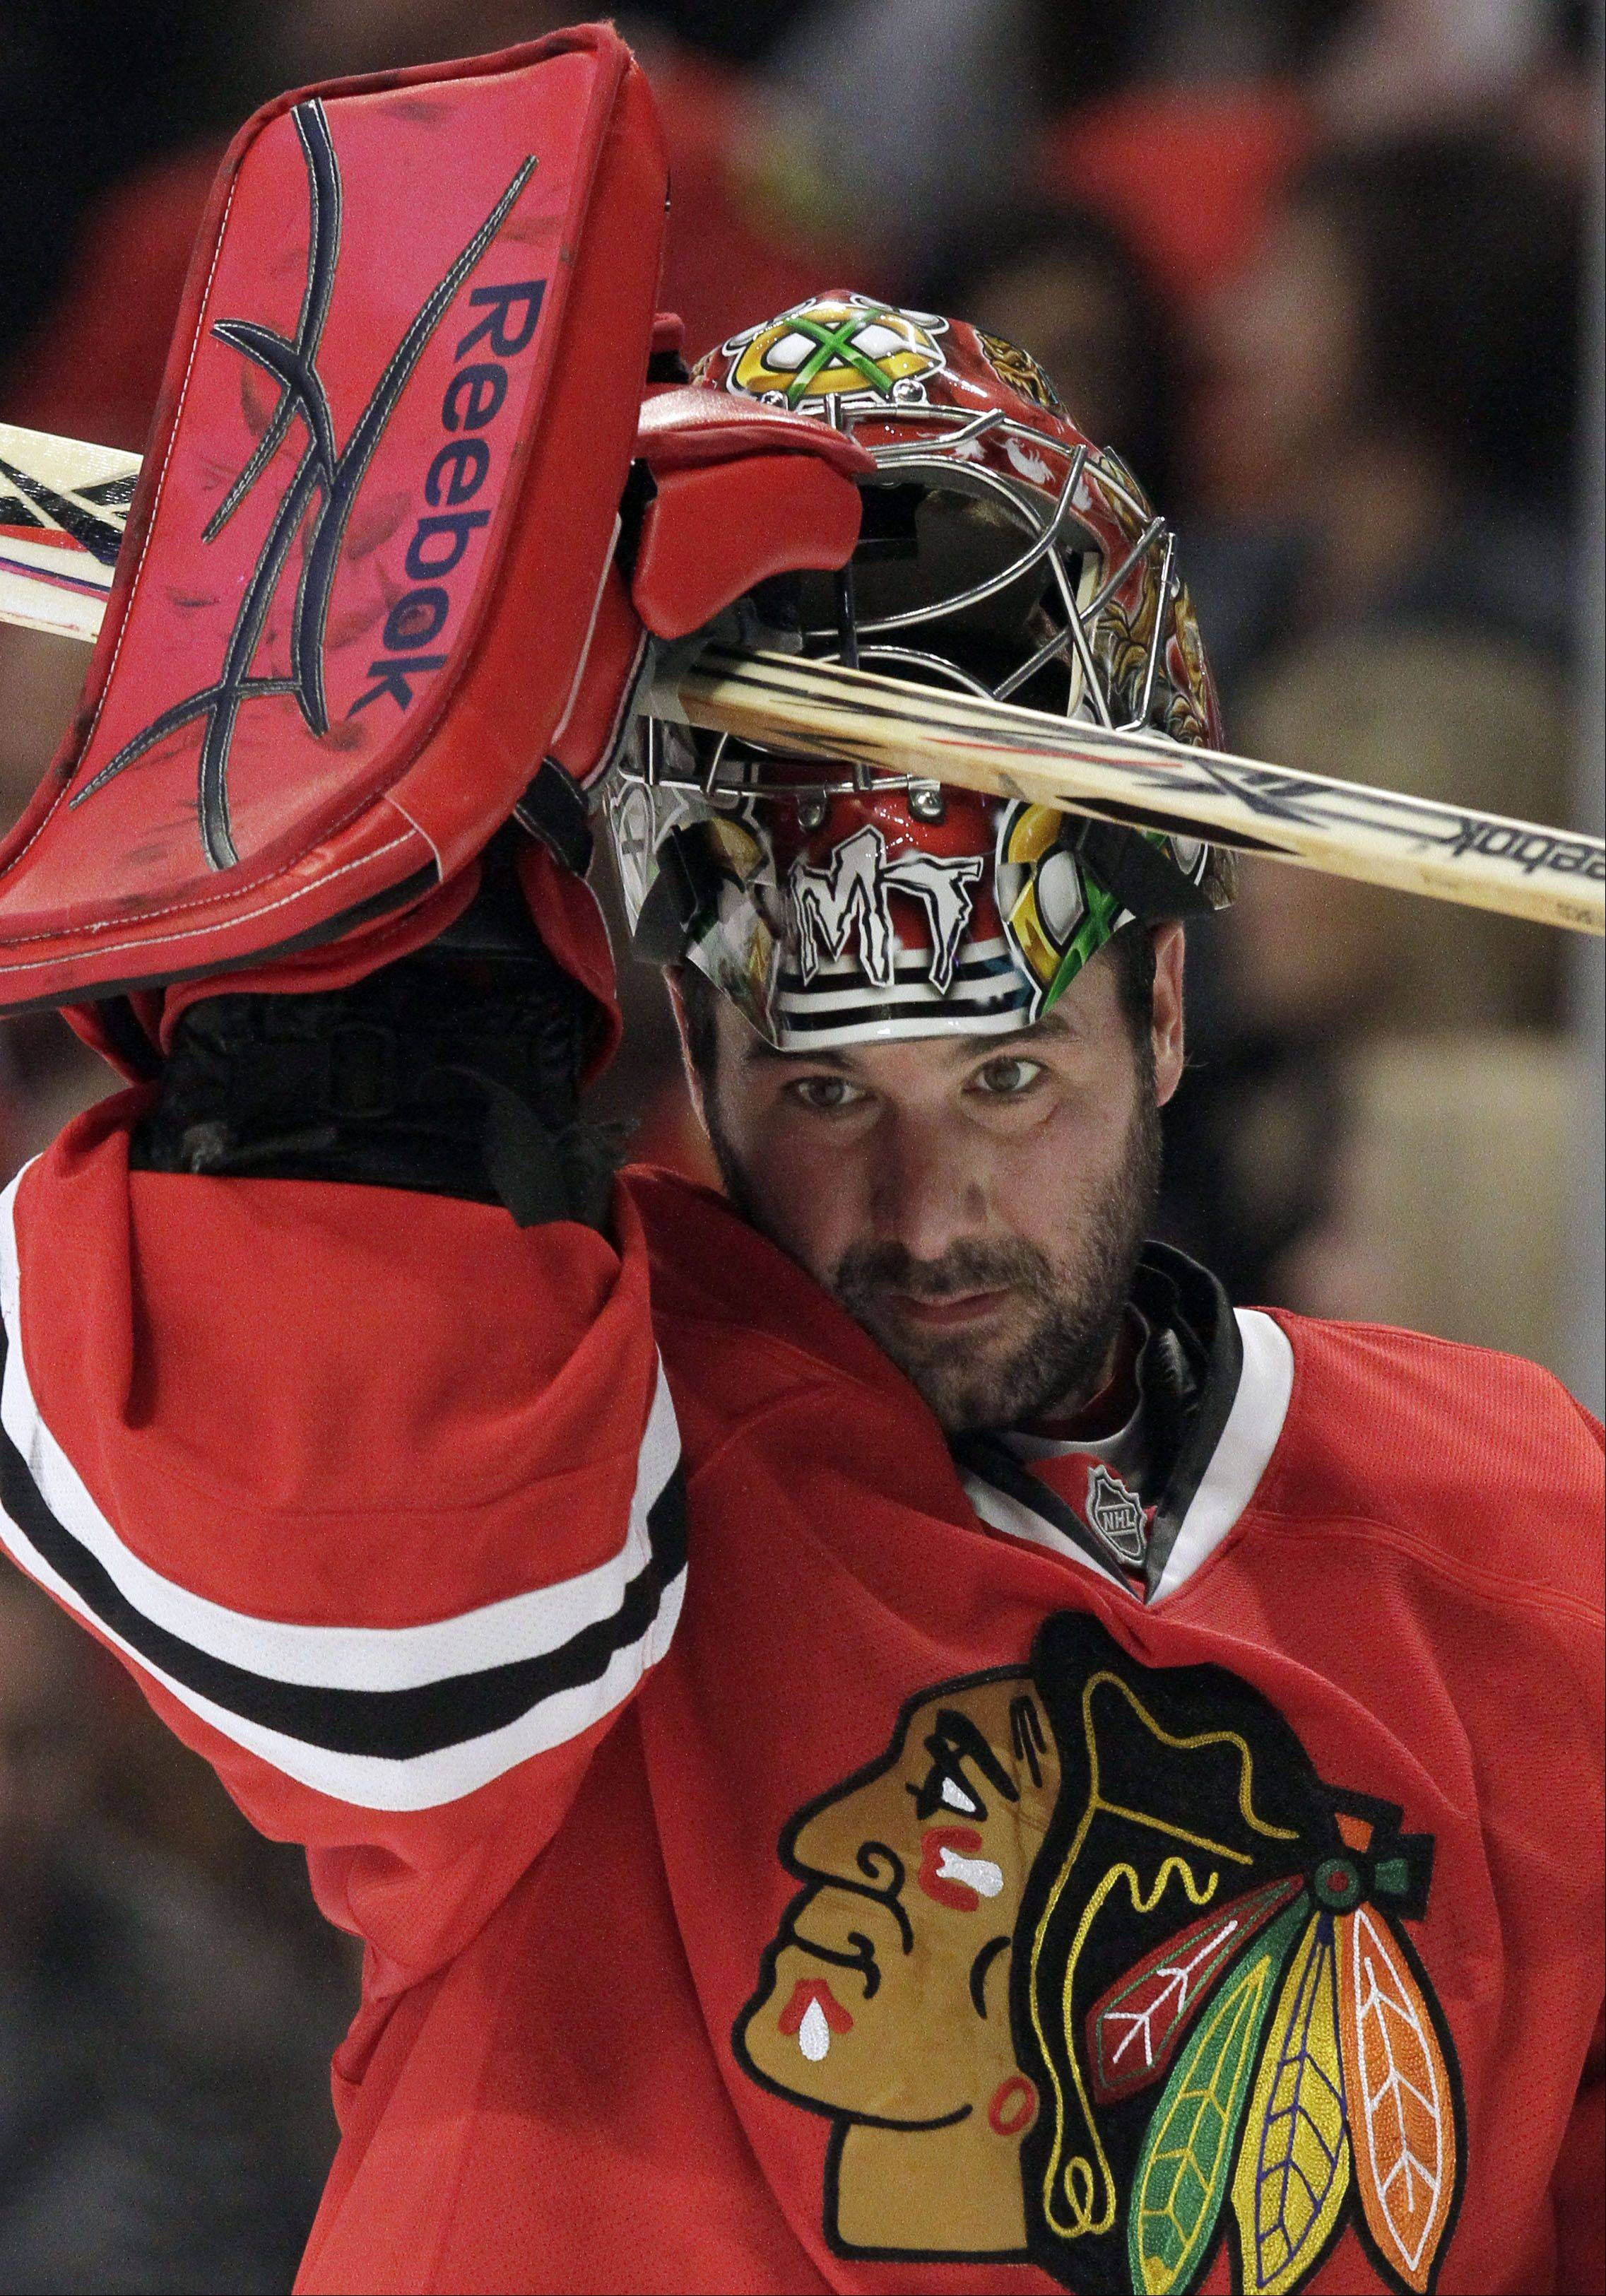 Although Blackhawks GM Stan Bowman praised goalie Marty Turco, above, for his professionalism and work with rookie Corey Crawford, it's likely Turco will try to play elsewhere next season.